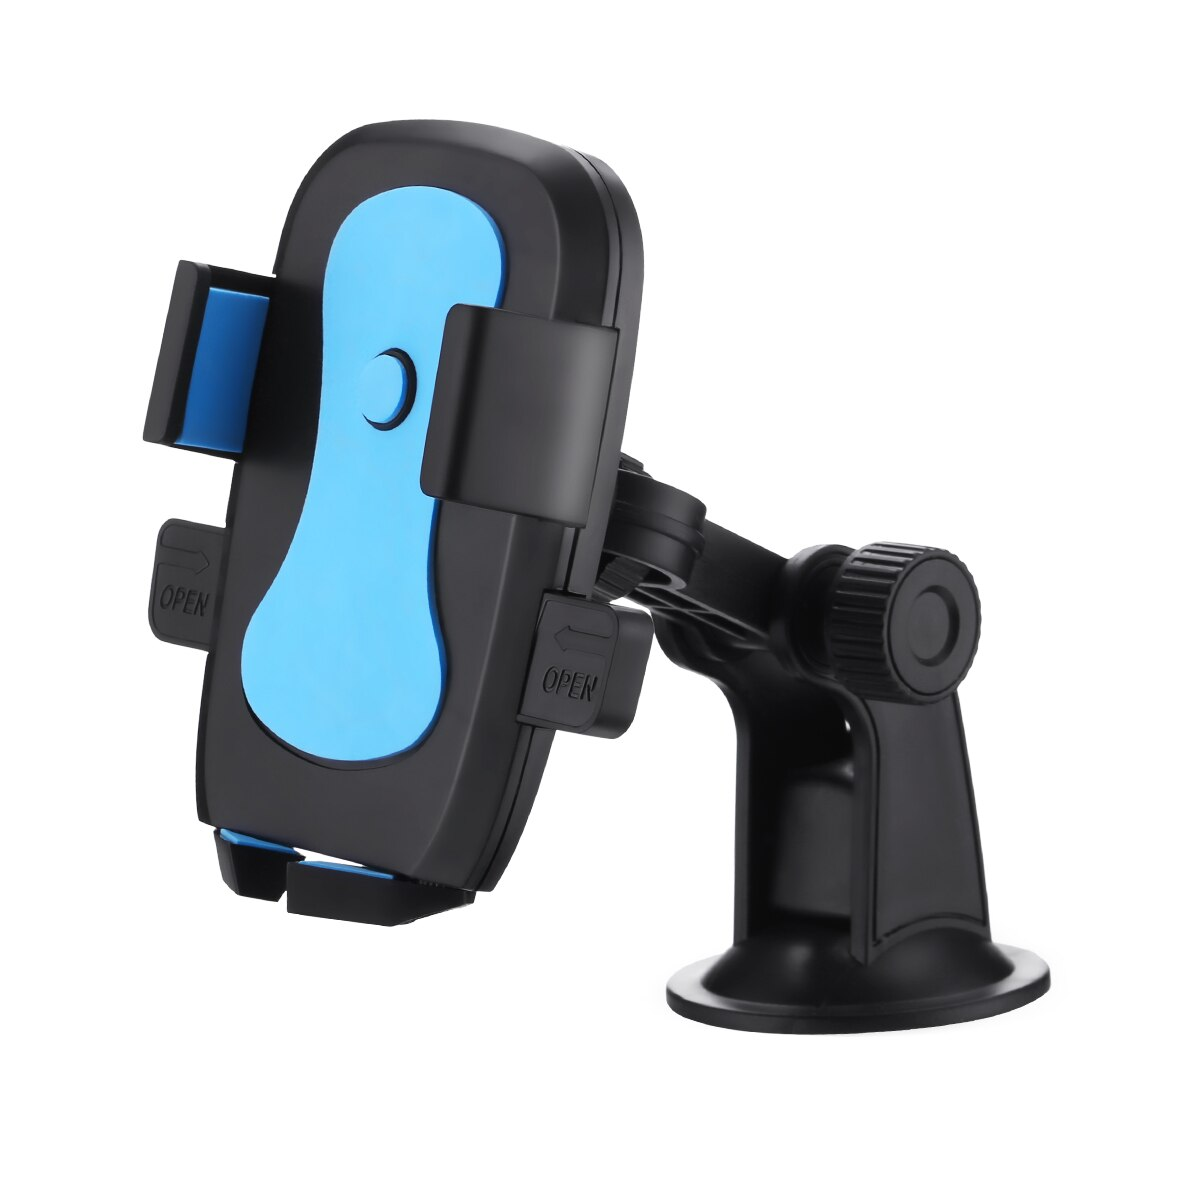 H1d32f8fc41694cc0ae0eee14c1f882610 - 360 Degree Rotatable Car Phone Holder For 2.4 to 3.4inch Phone Mount Stand in Car Bracket For Poco x3 pro iPhone Xiaomi Samsung